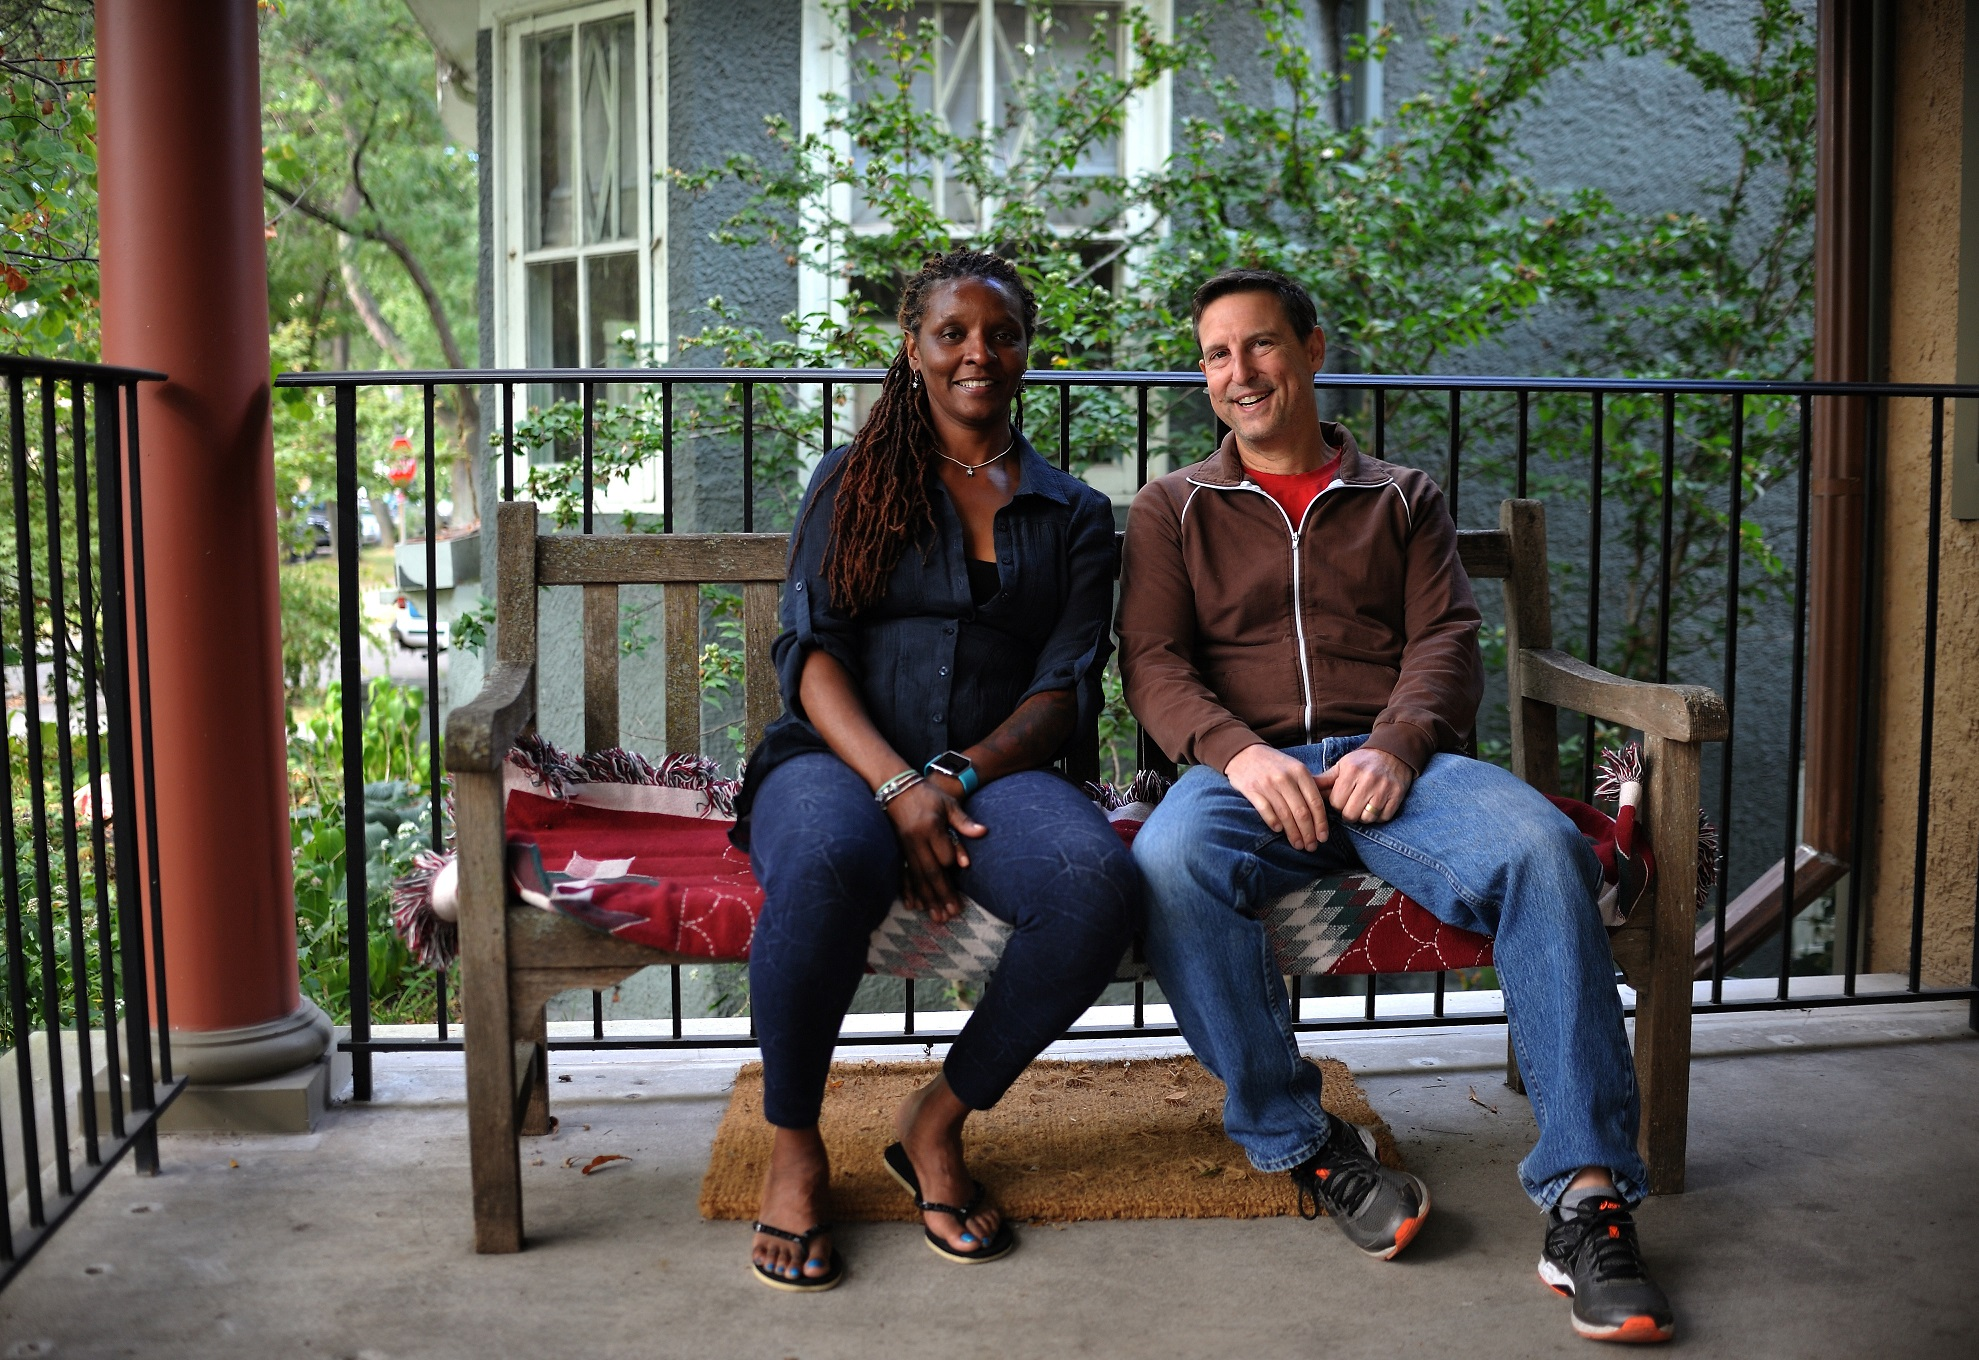 Edgewater resident Wade, sitting with his Folded Map twin Nanette on her porch in the Englewood community. Courtesy of Tonika Lewis Johnson.